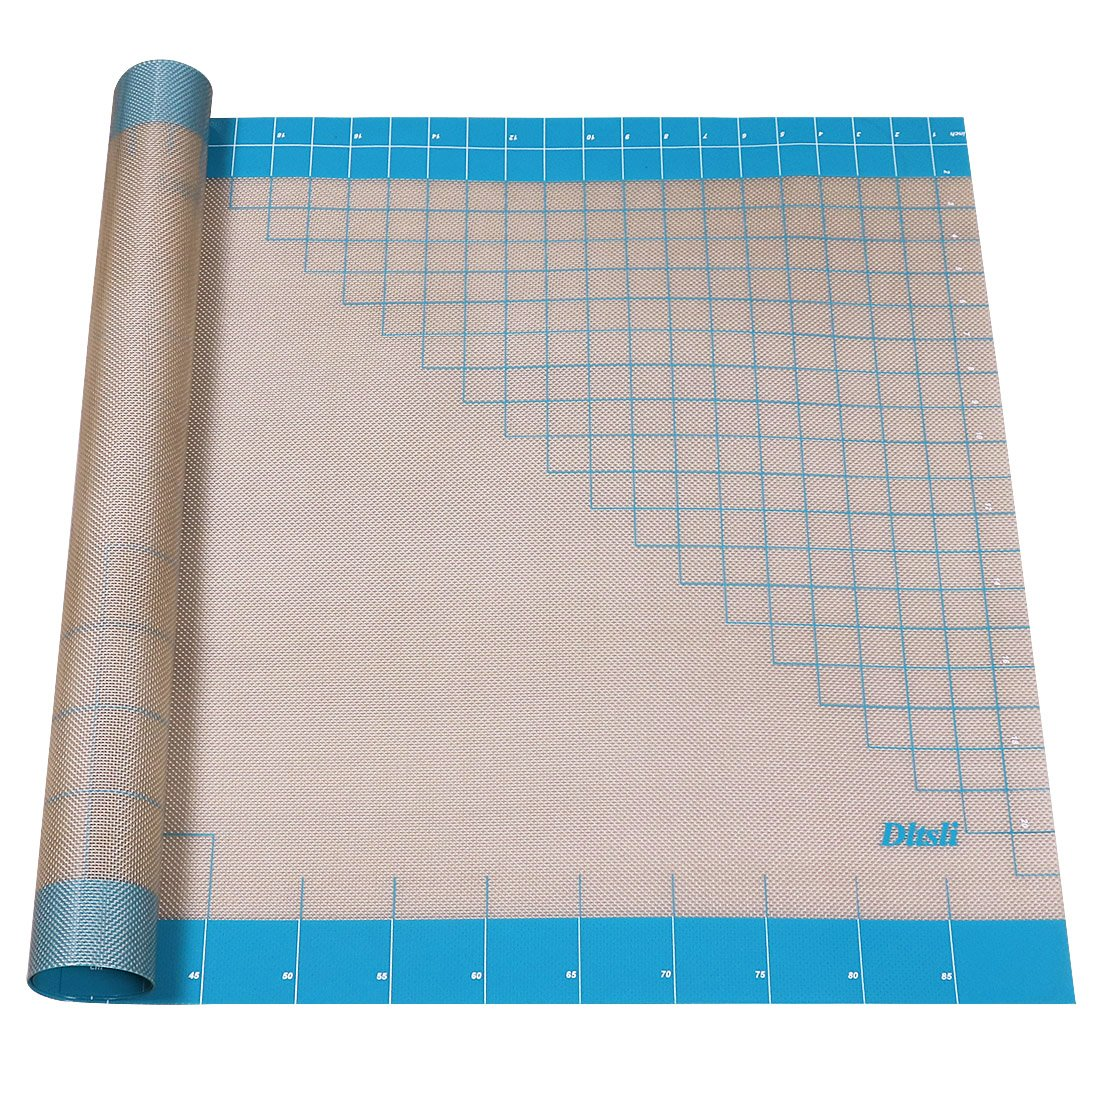 Silicone Pastry Mat with Measurements, 36'' x 24'', Full Sticks To Countertop For Rolling Dough, Perfect Fondant Surface.